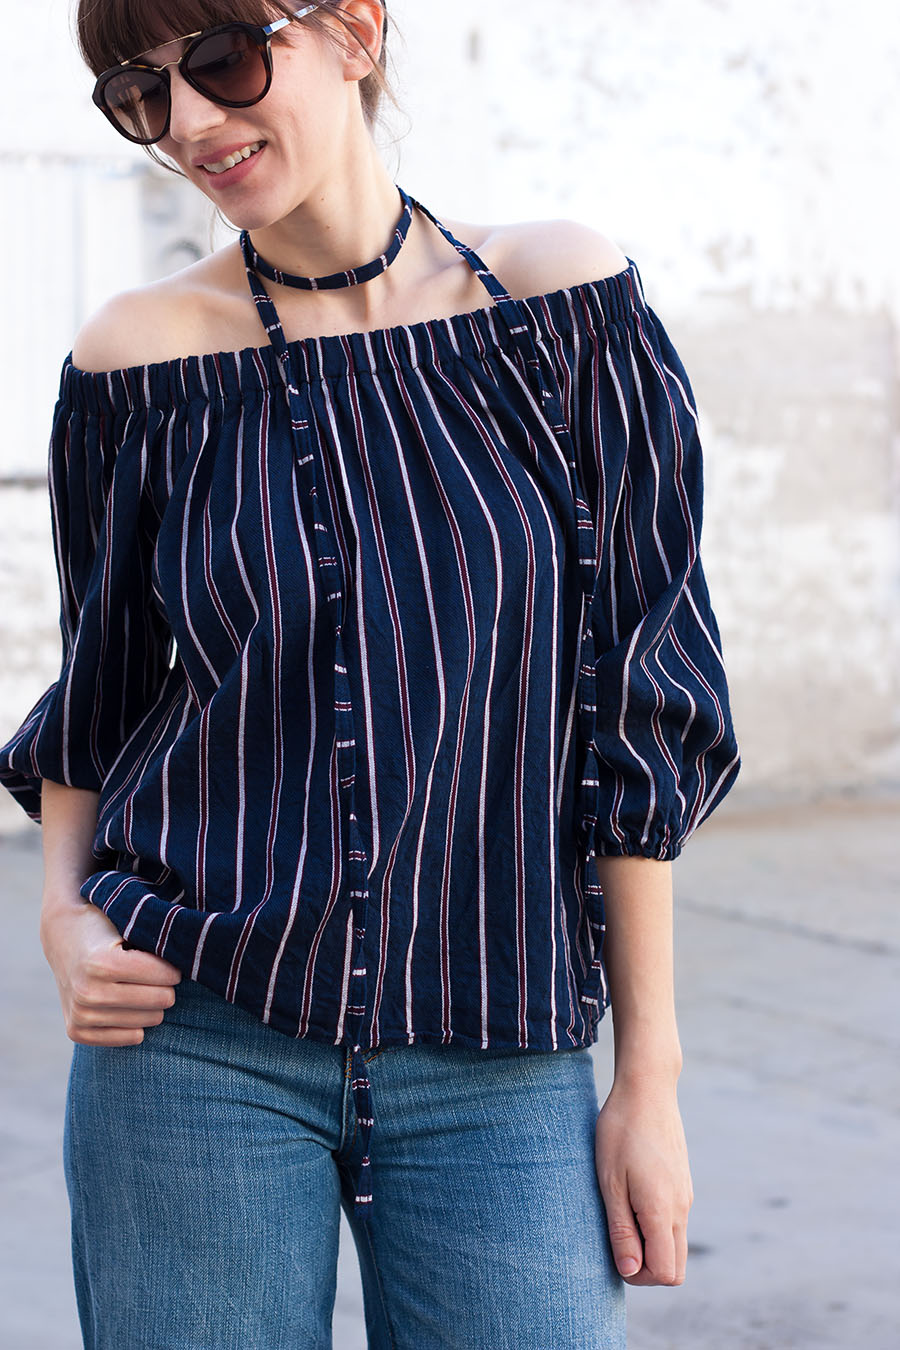 Prada Sunglasses, 70's inspired outfit, Off The Shoulder Top